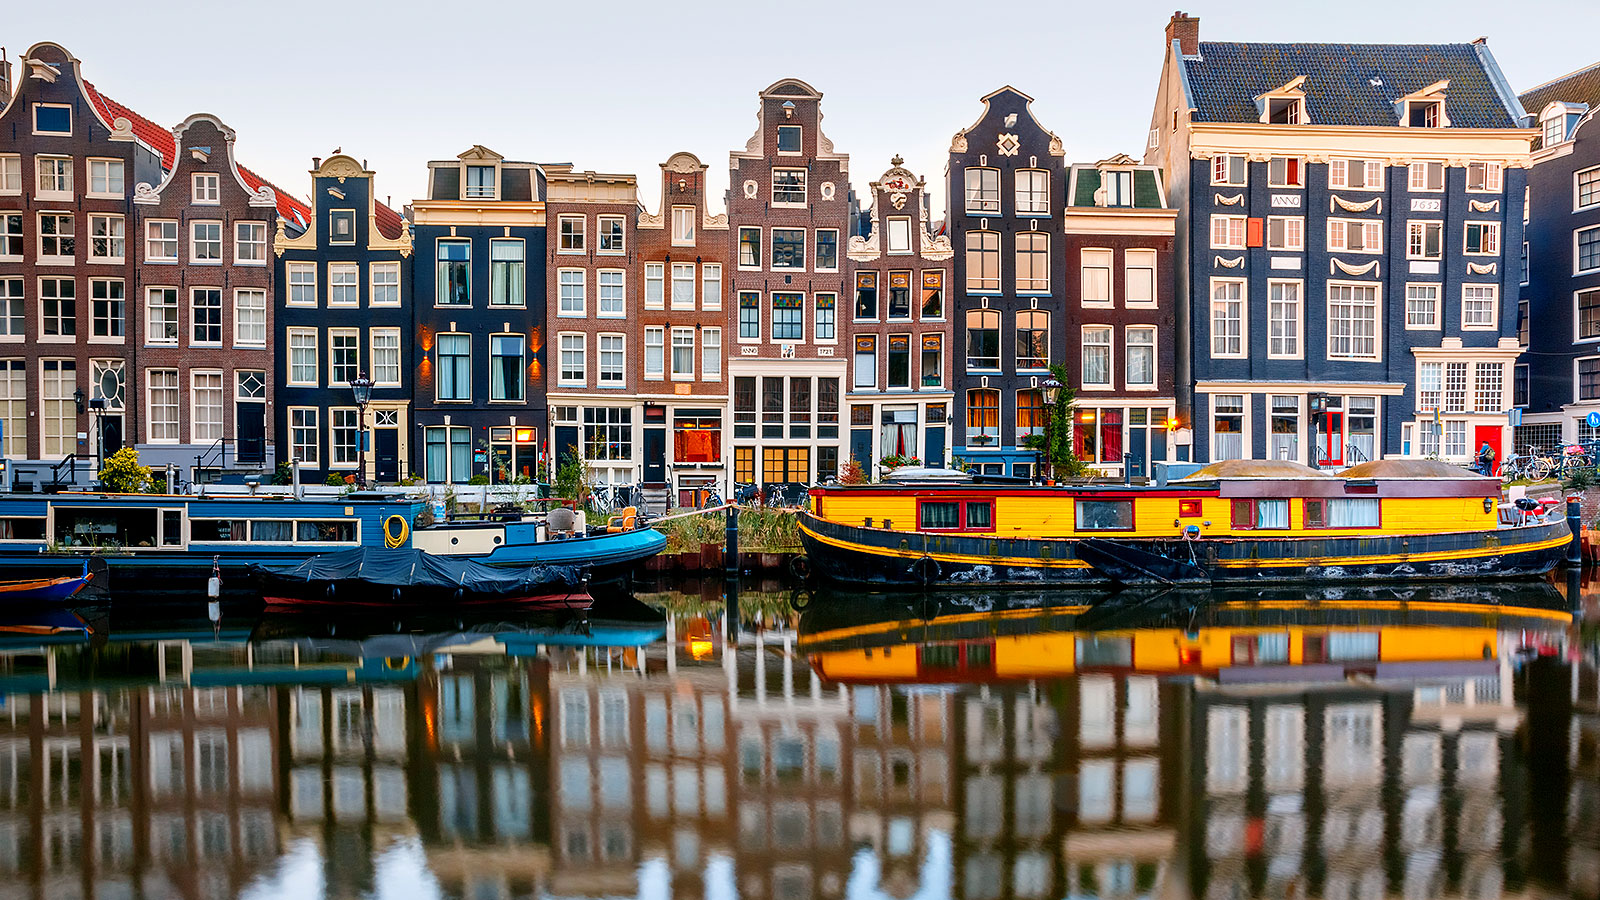 Amsterdam's natural wining and dining